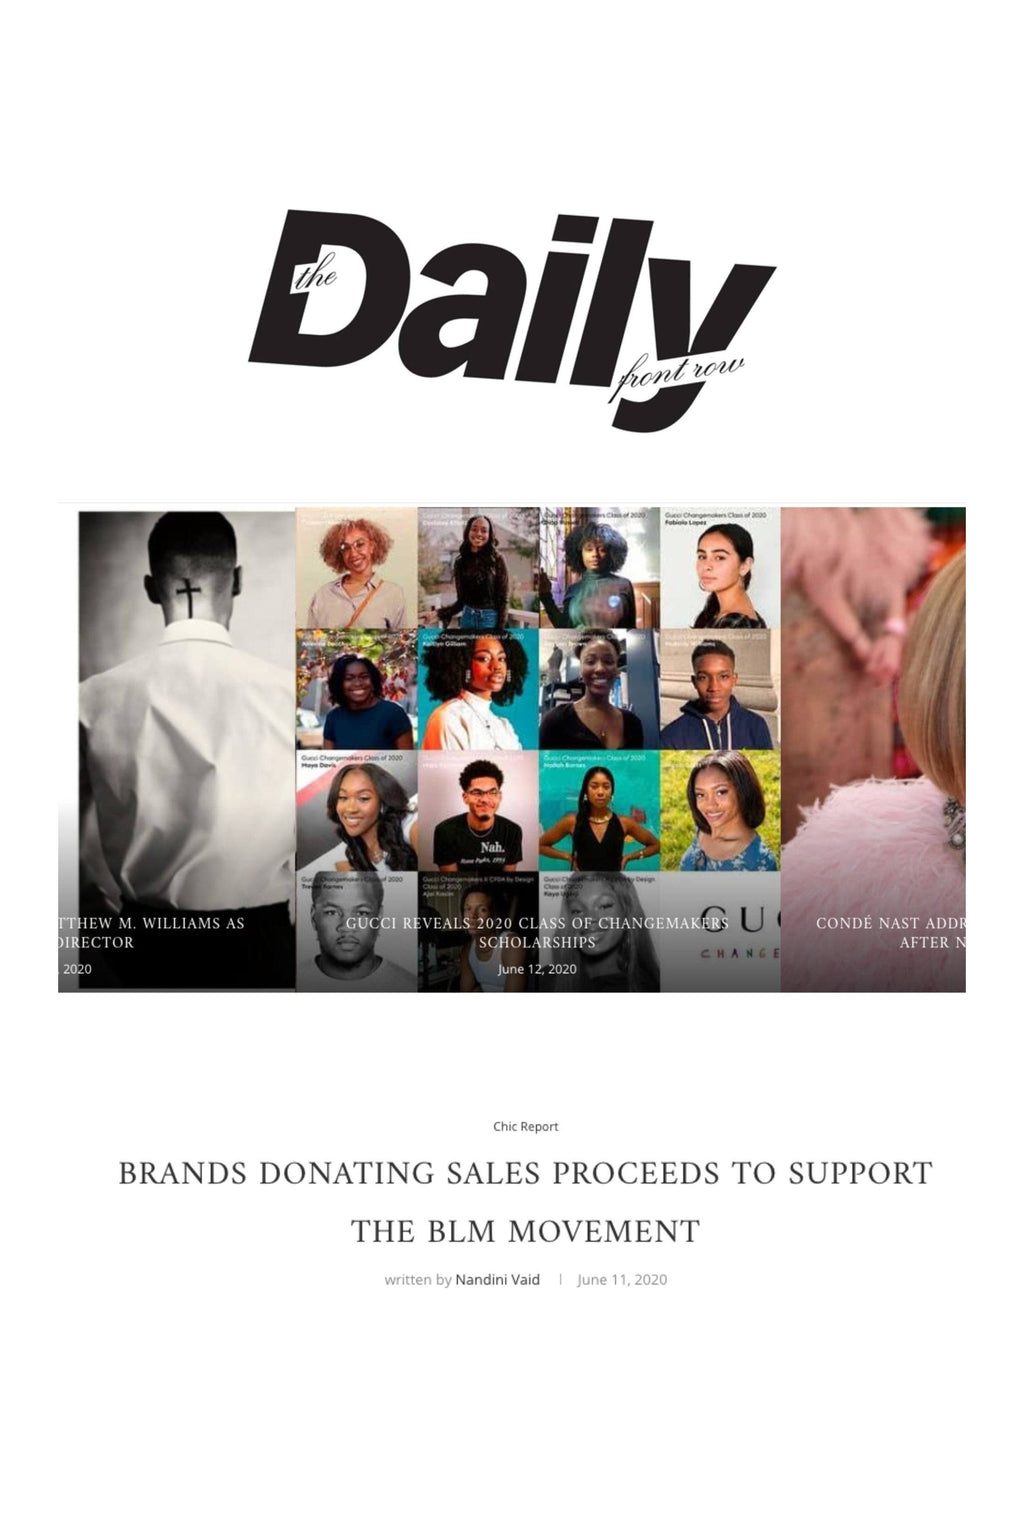 DAILY FRONT ROW: BRANDS DONATING SALES PROCEEDS TO SUPPORT THE BLM MOVEMENT